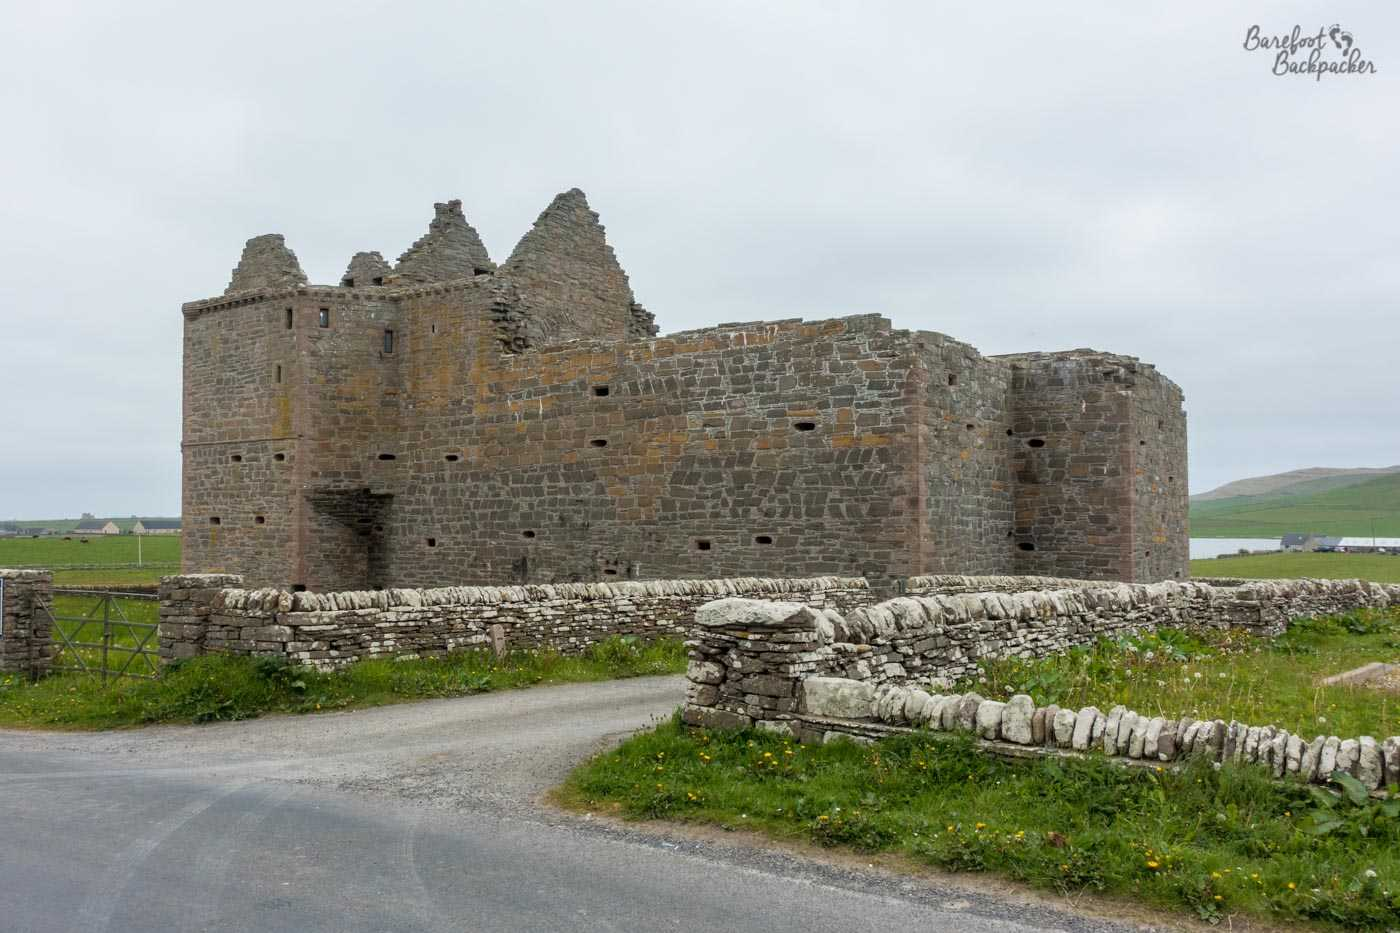 Noltland Castle, ruins of. Four walls, in a kind of cuboid shape, the left hand side of which has slightly raised diagonals on which sat a roof. There is no roof. The castle is in a small field surrounded by a low stone wall.